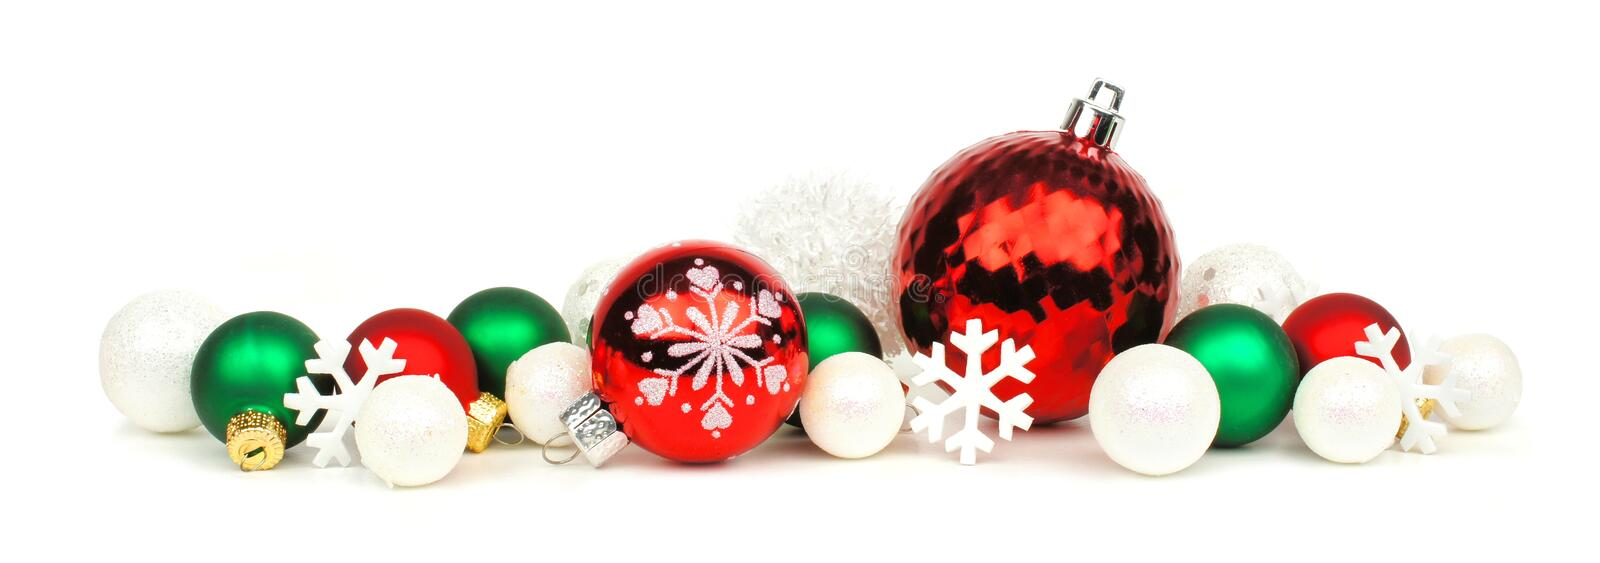 Red green and white christmas ornament border stock photo